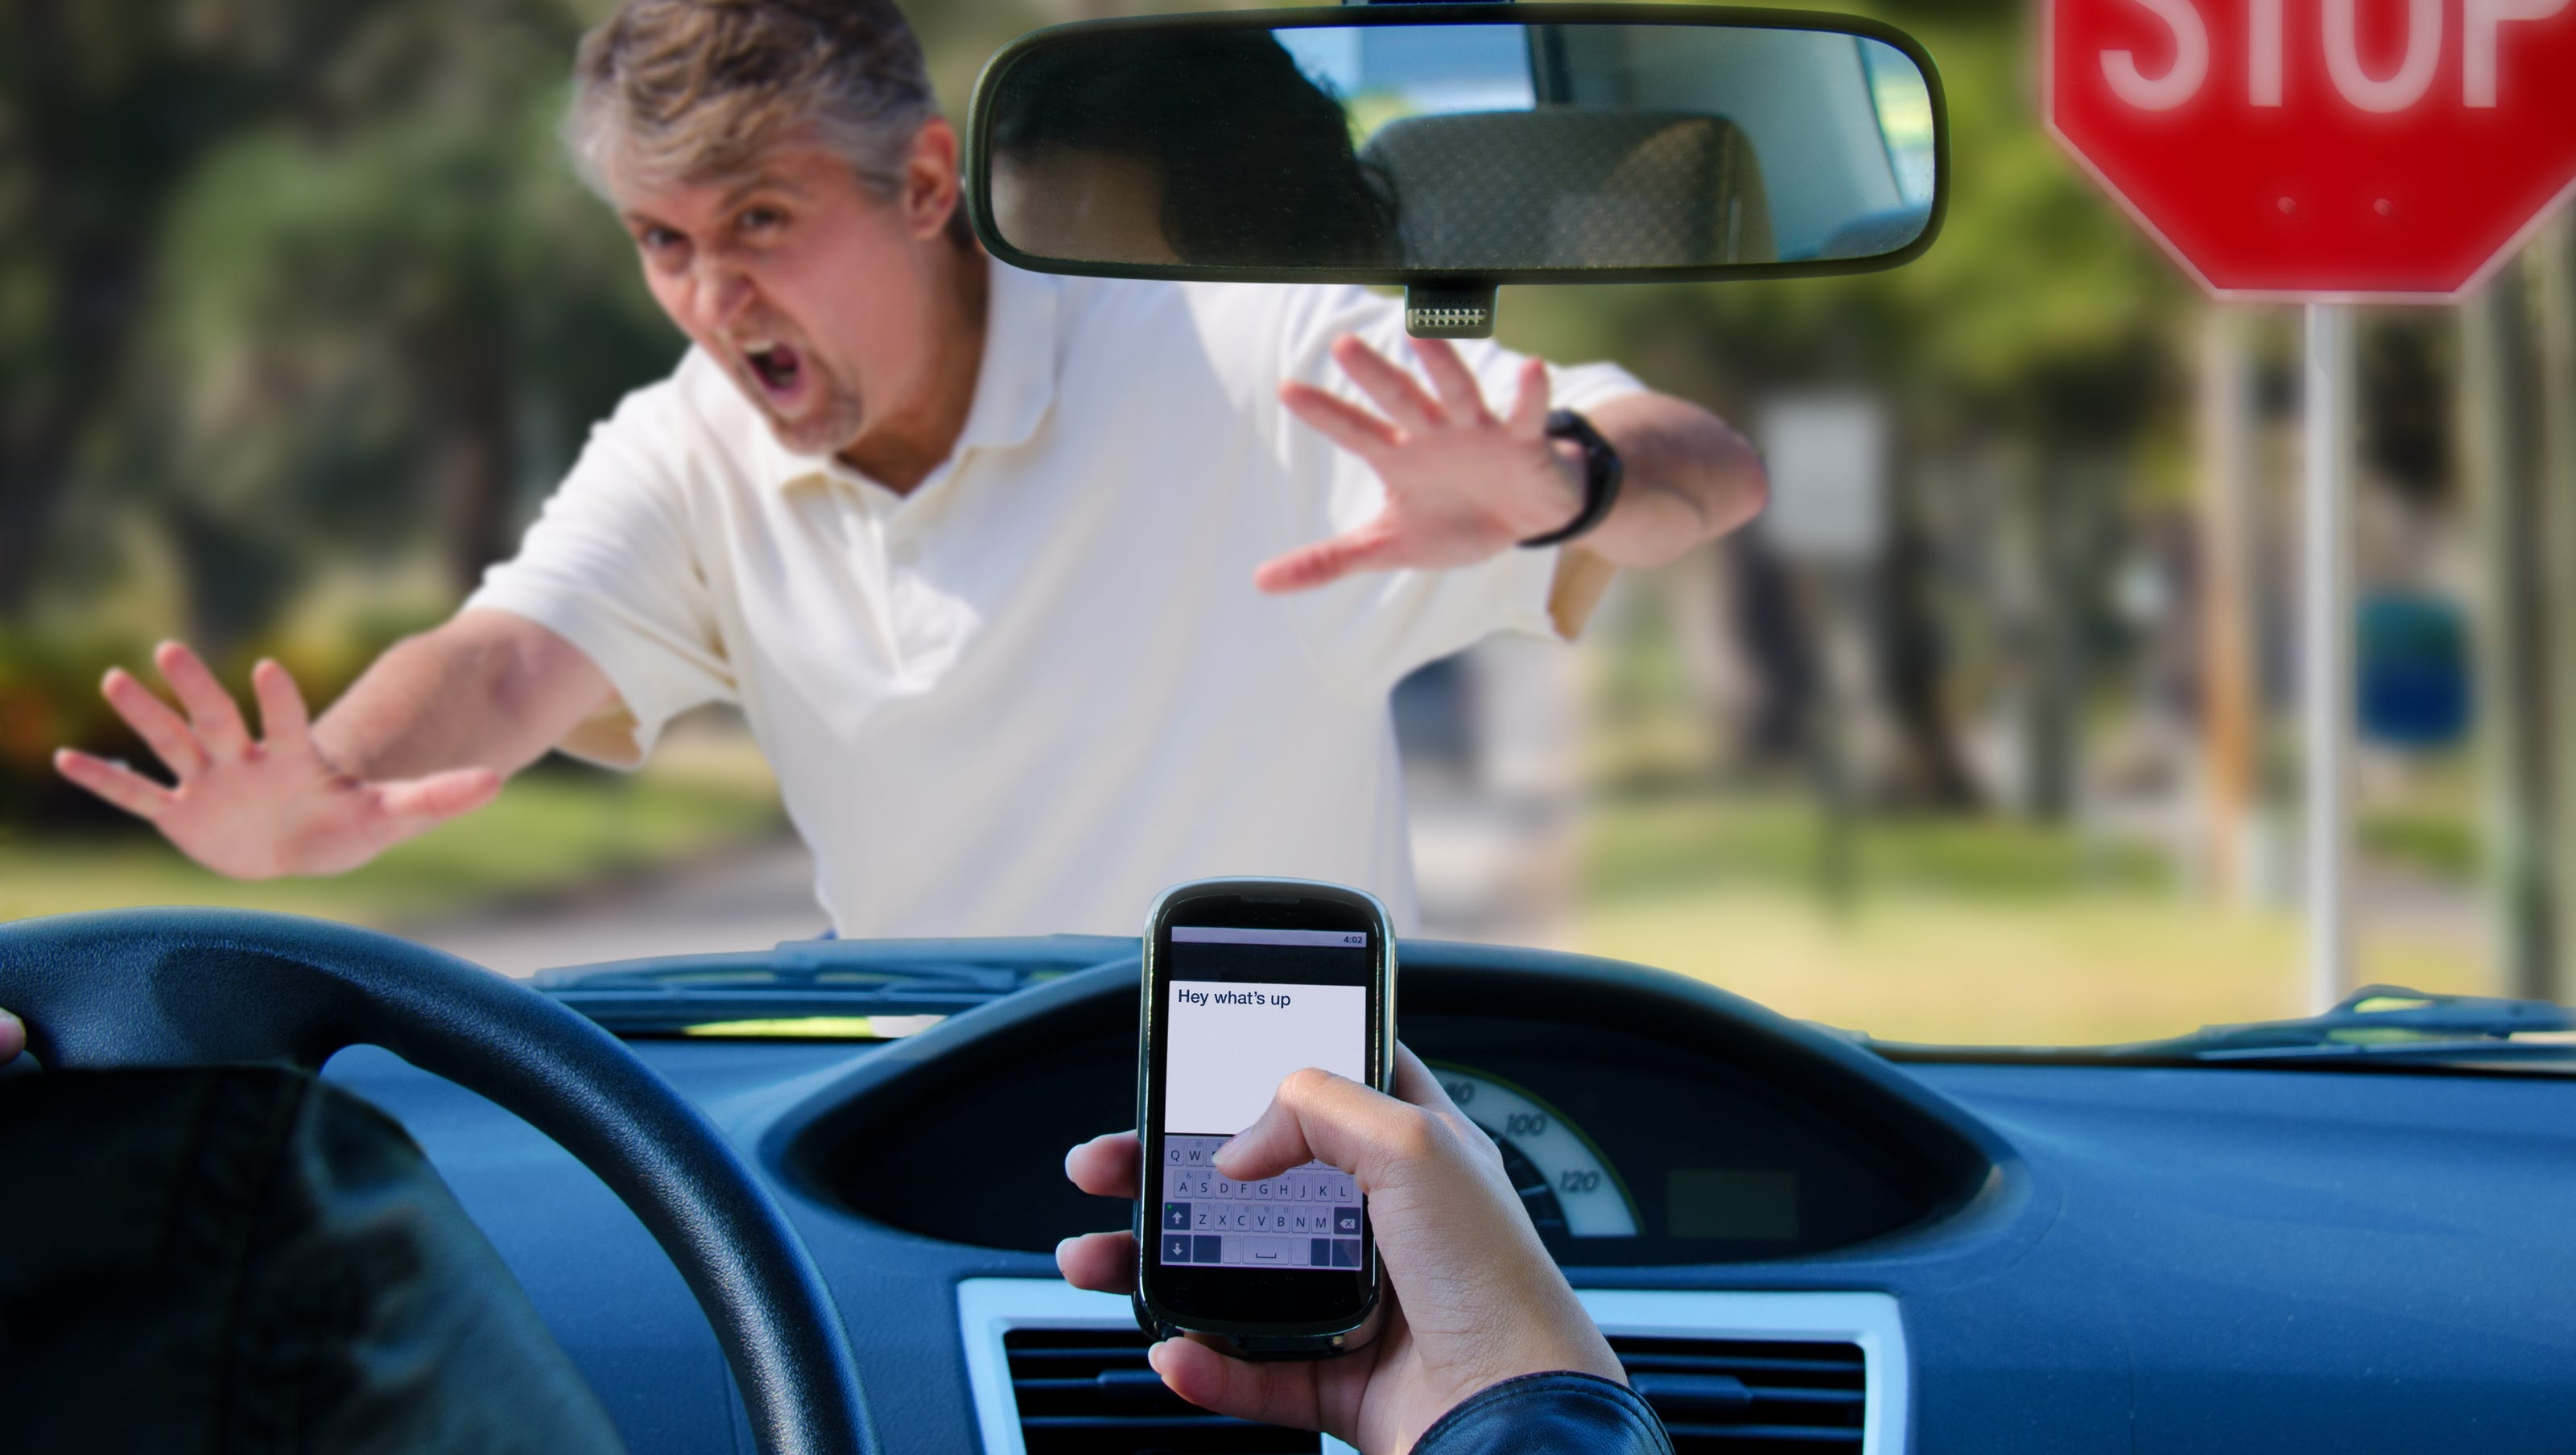 Roberts Bill to ban texting while driving in Arizona appears dead